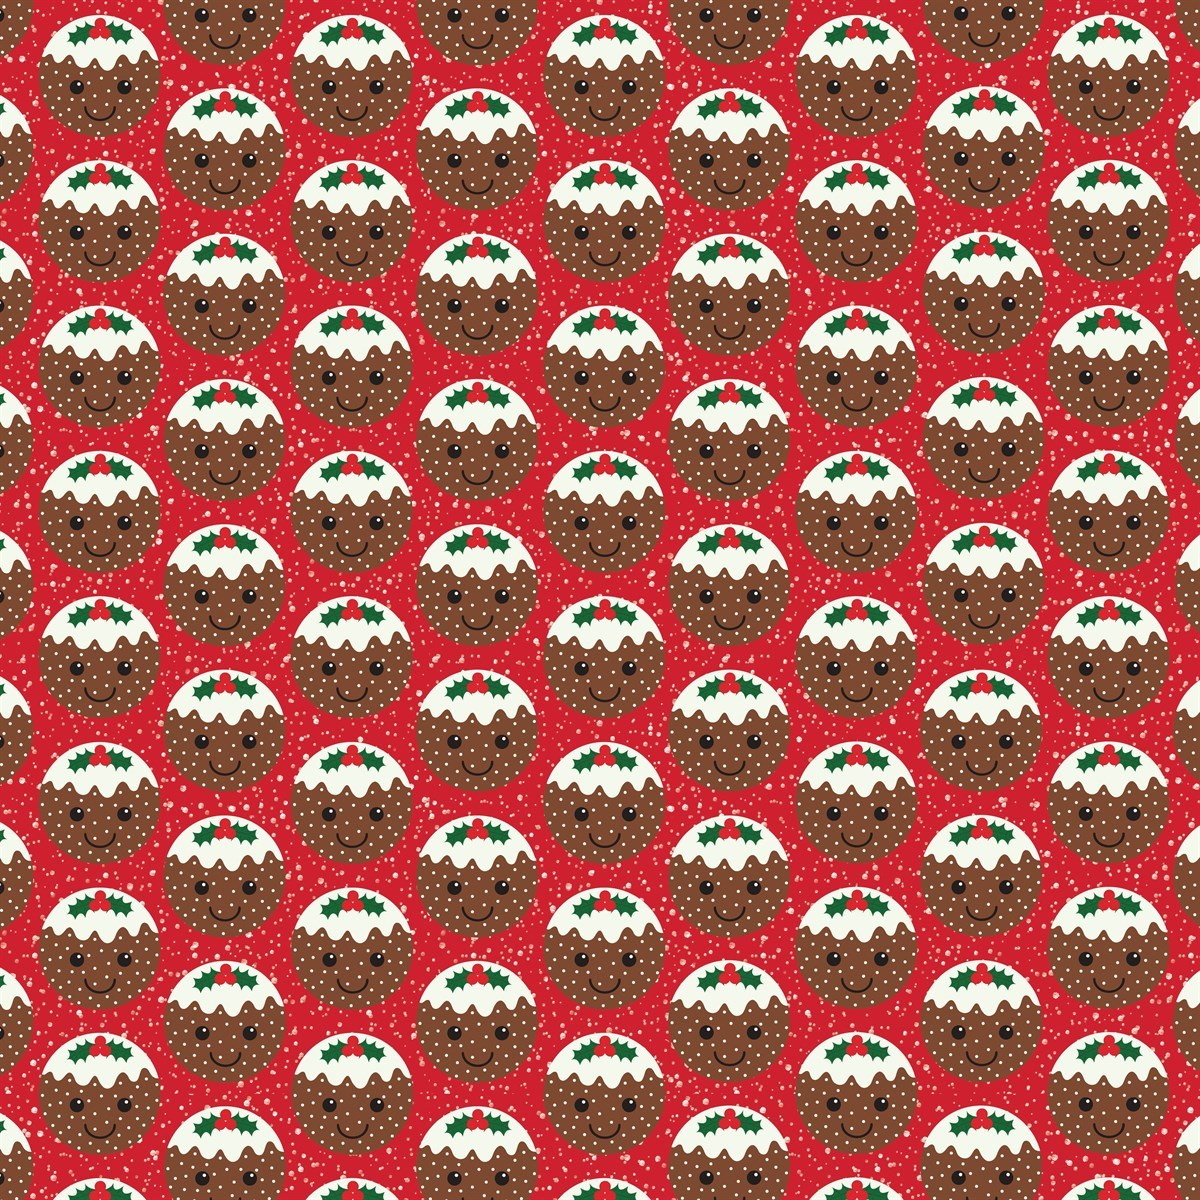 christmas pudding wrapping paper default image - Cheap Christmas Wrapping Paper